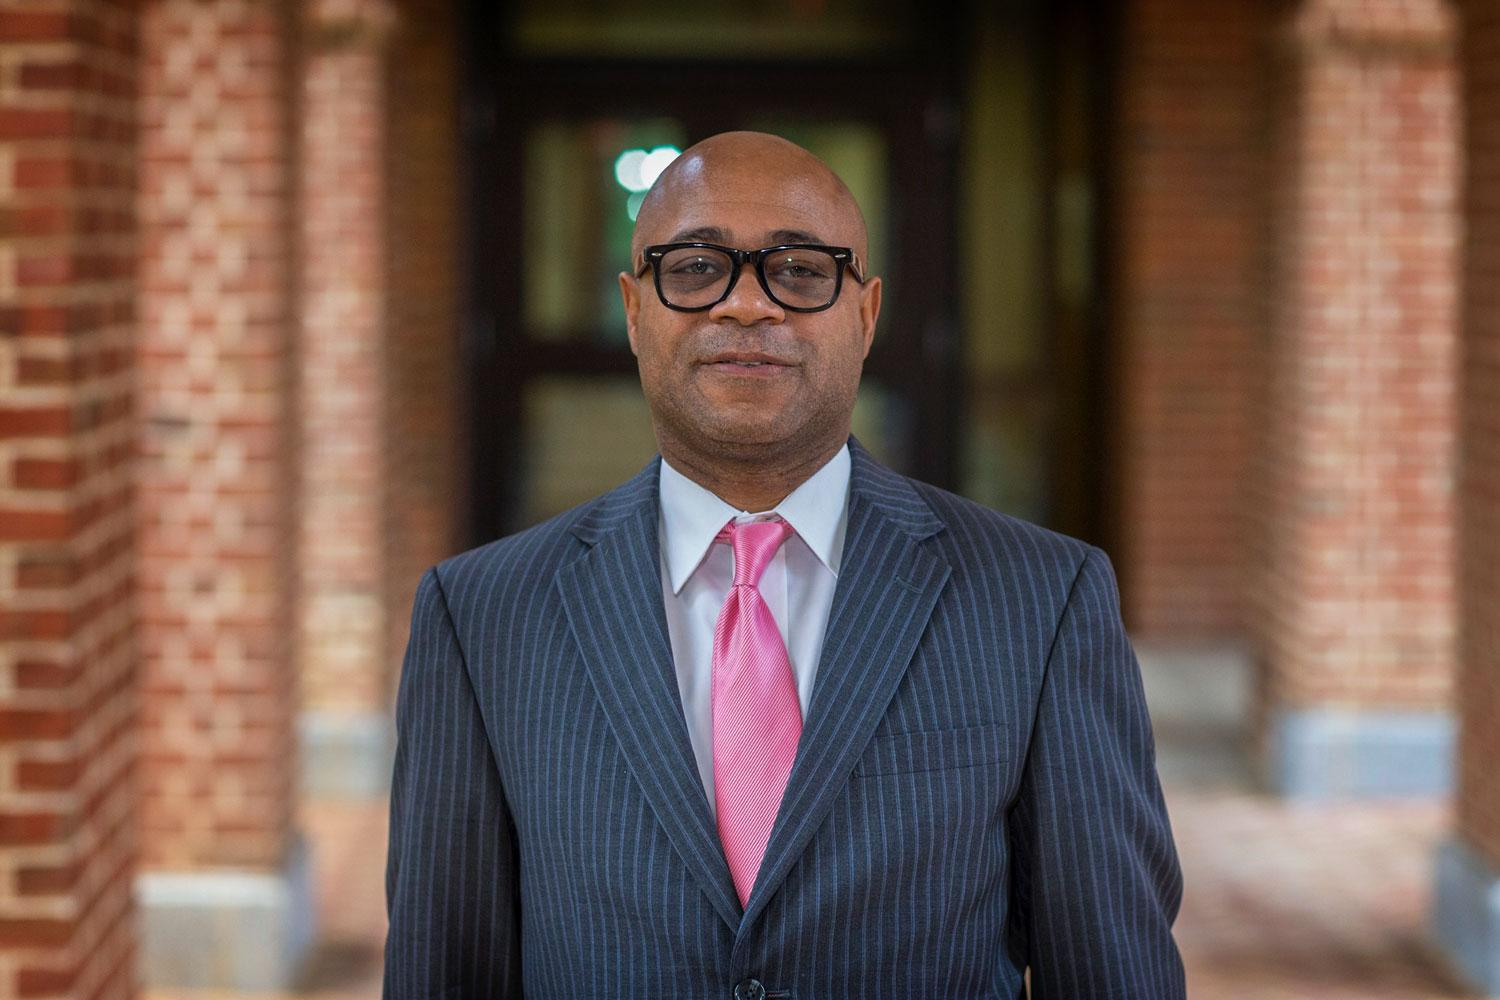 Curry School professor Derrick Alridge hopes to build a novel organization that will not only produce research, but also drive change on both local and national levels.